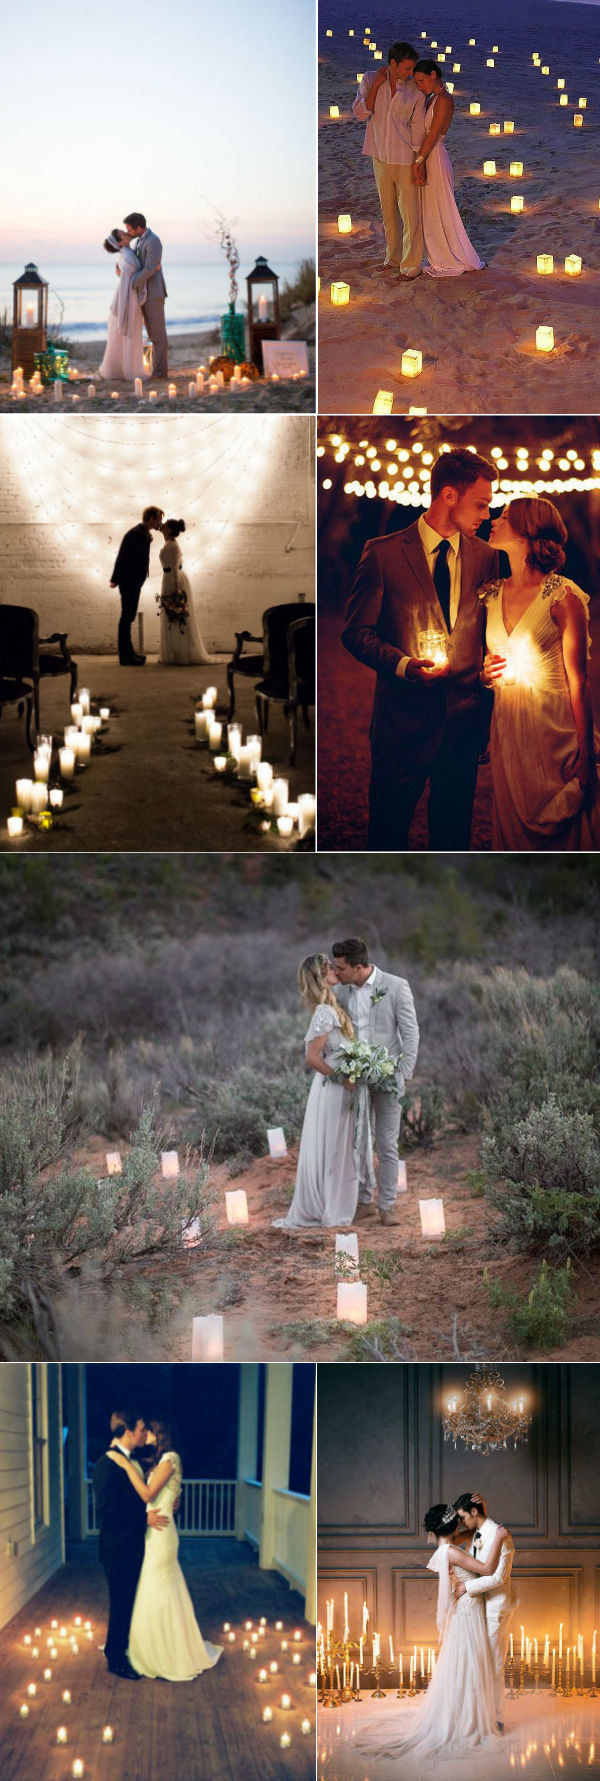 romantic wedding photography ideas by candlelight